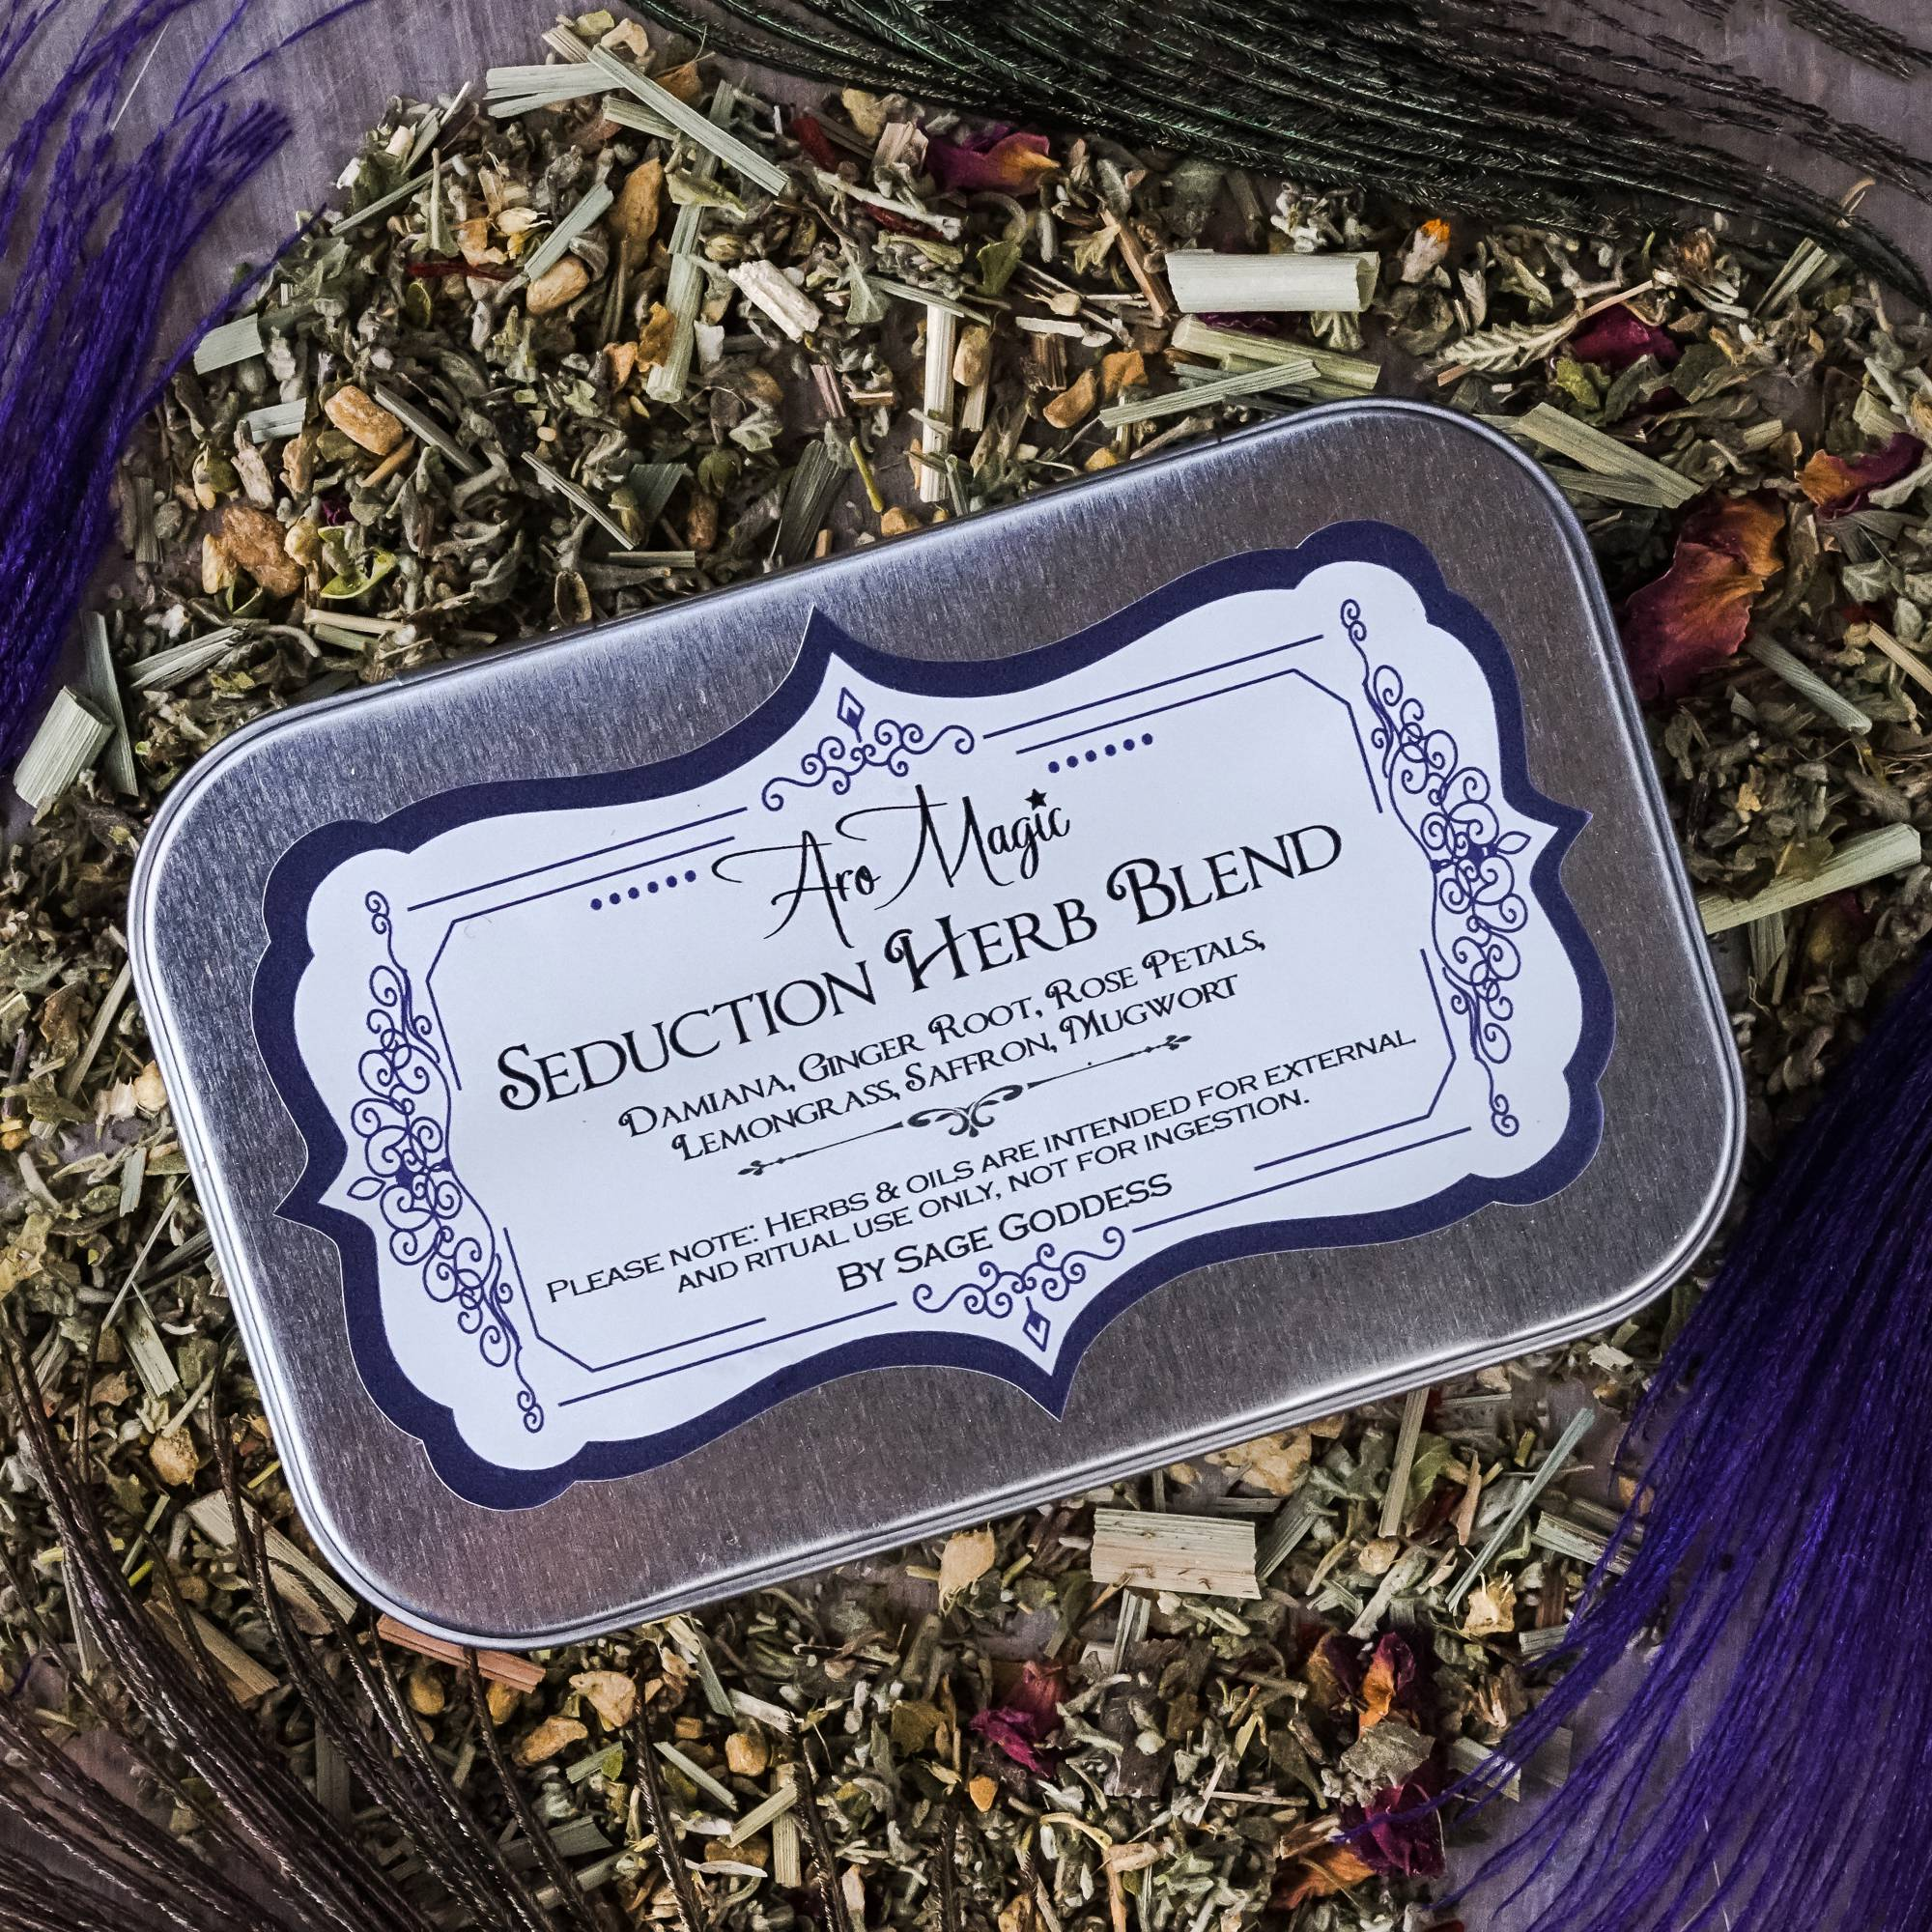 AroMagic Bonus Kit: Seduction Herb Blend